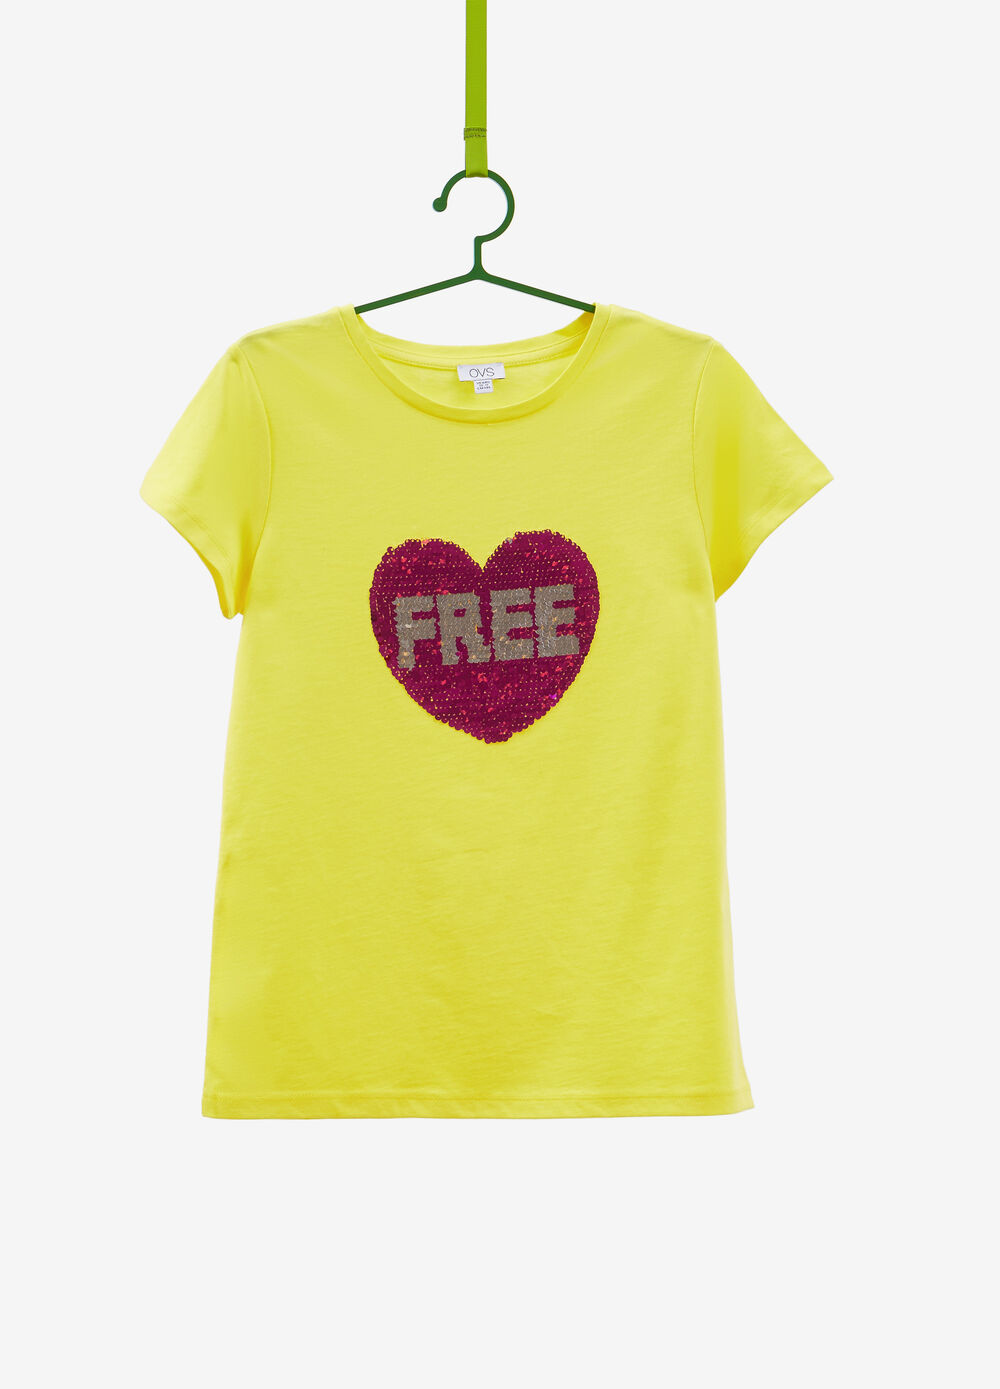 Cotton T-shirt with heart sequins